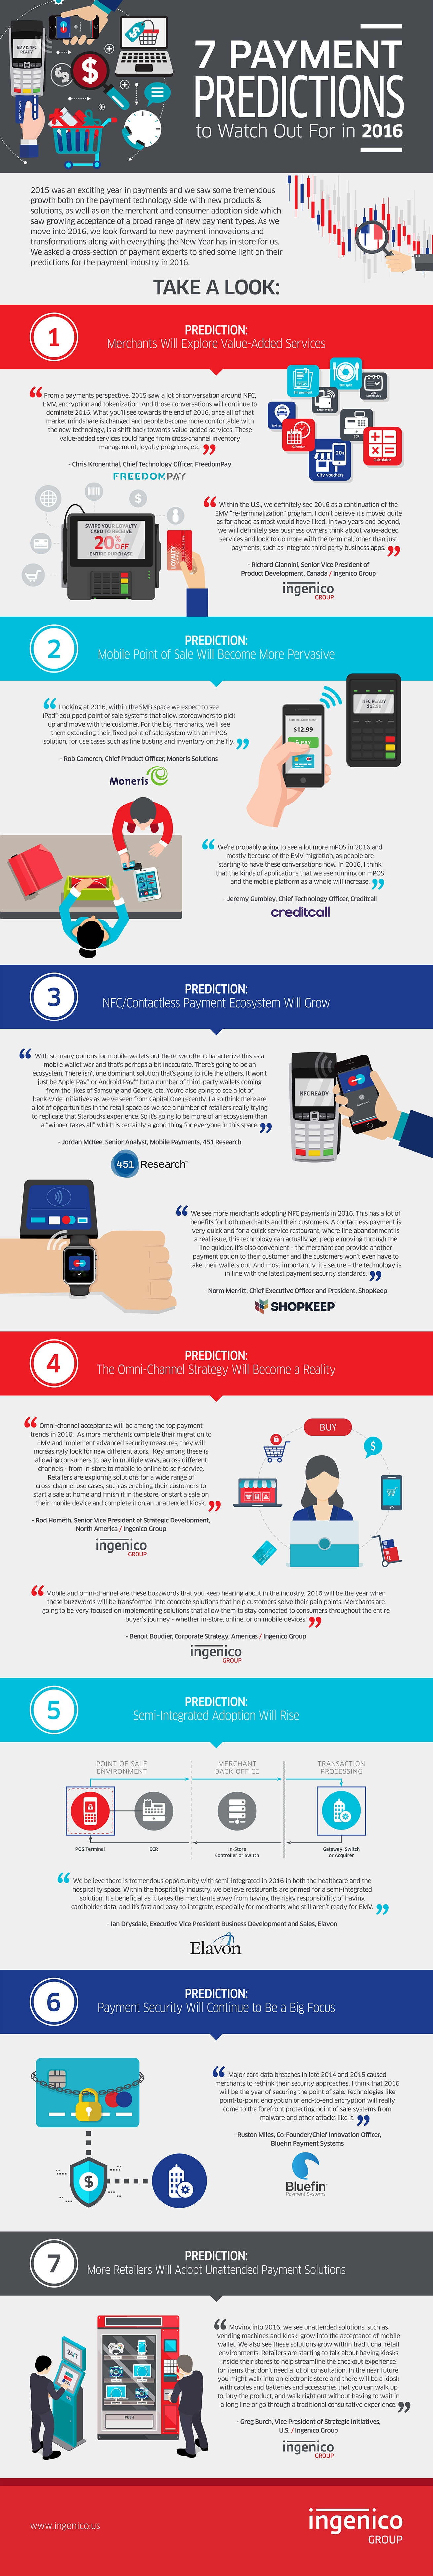 7 Payment Predictions for 2016